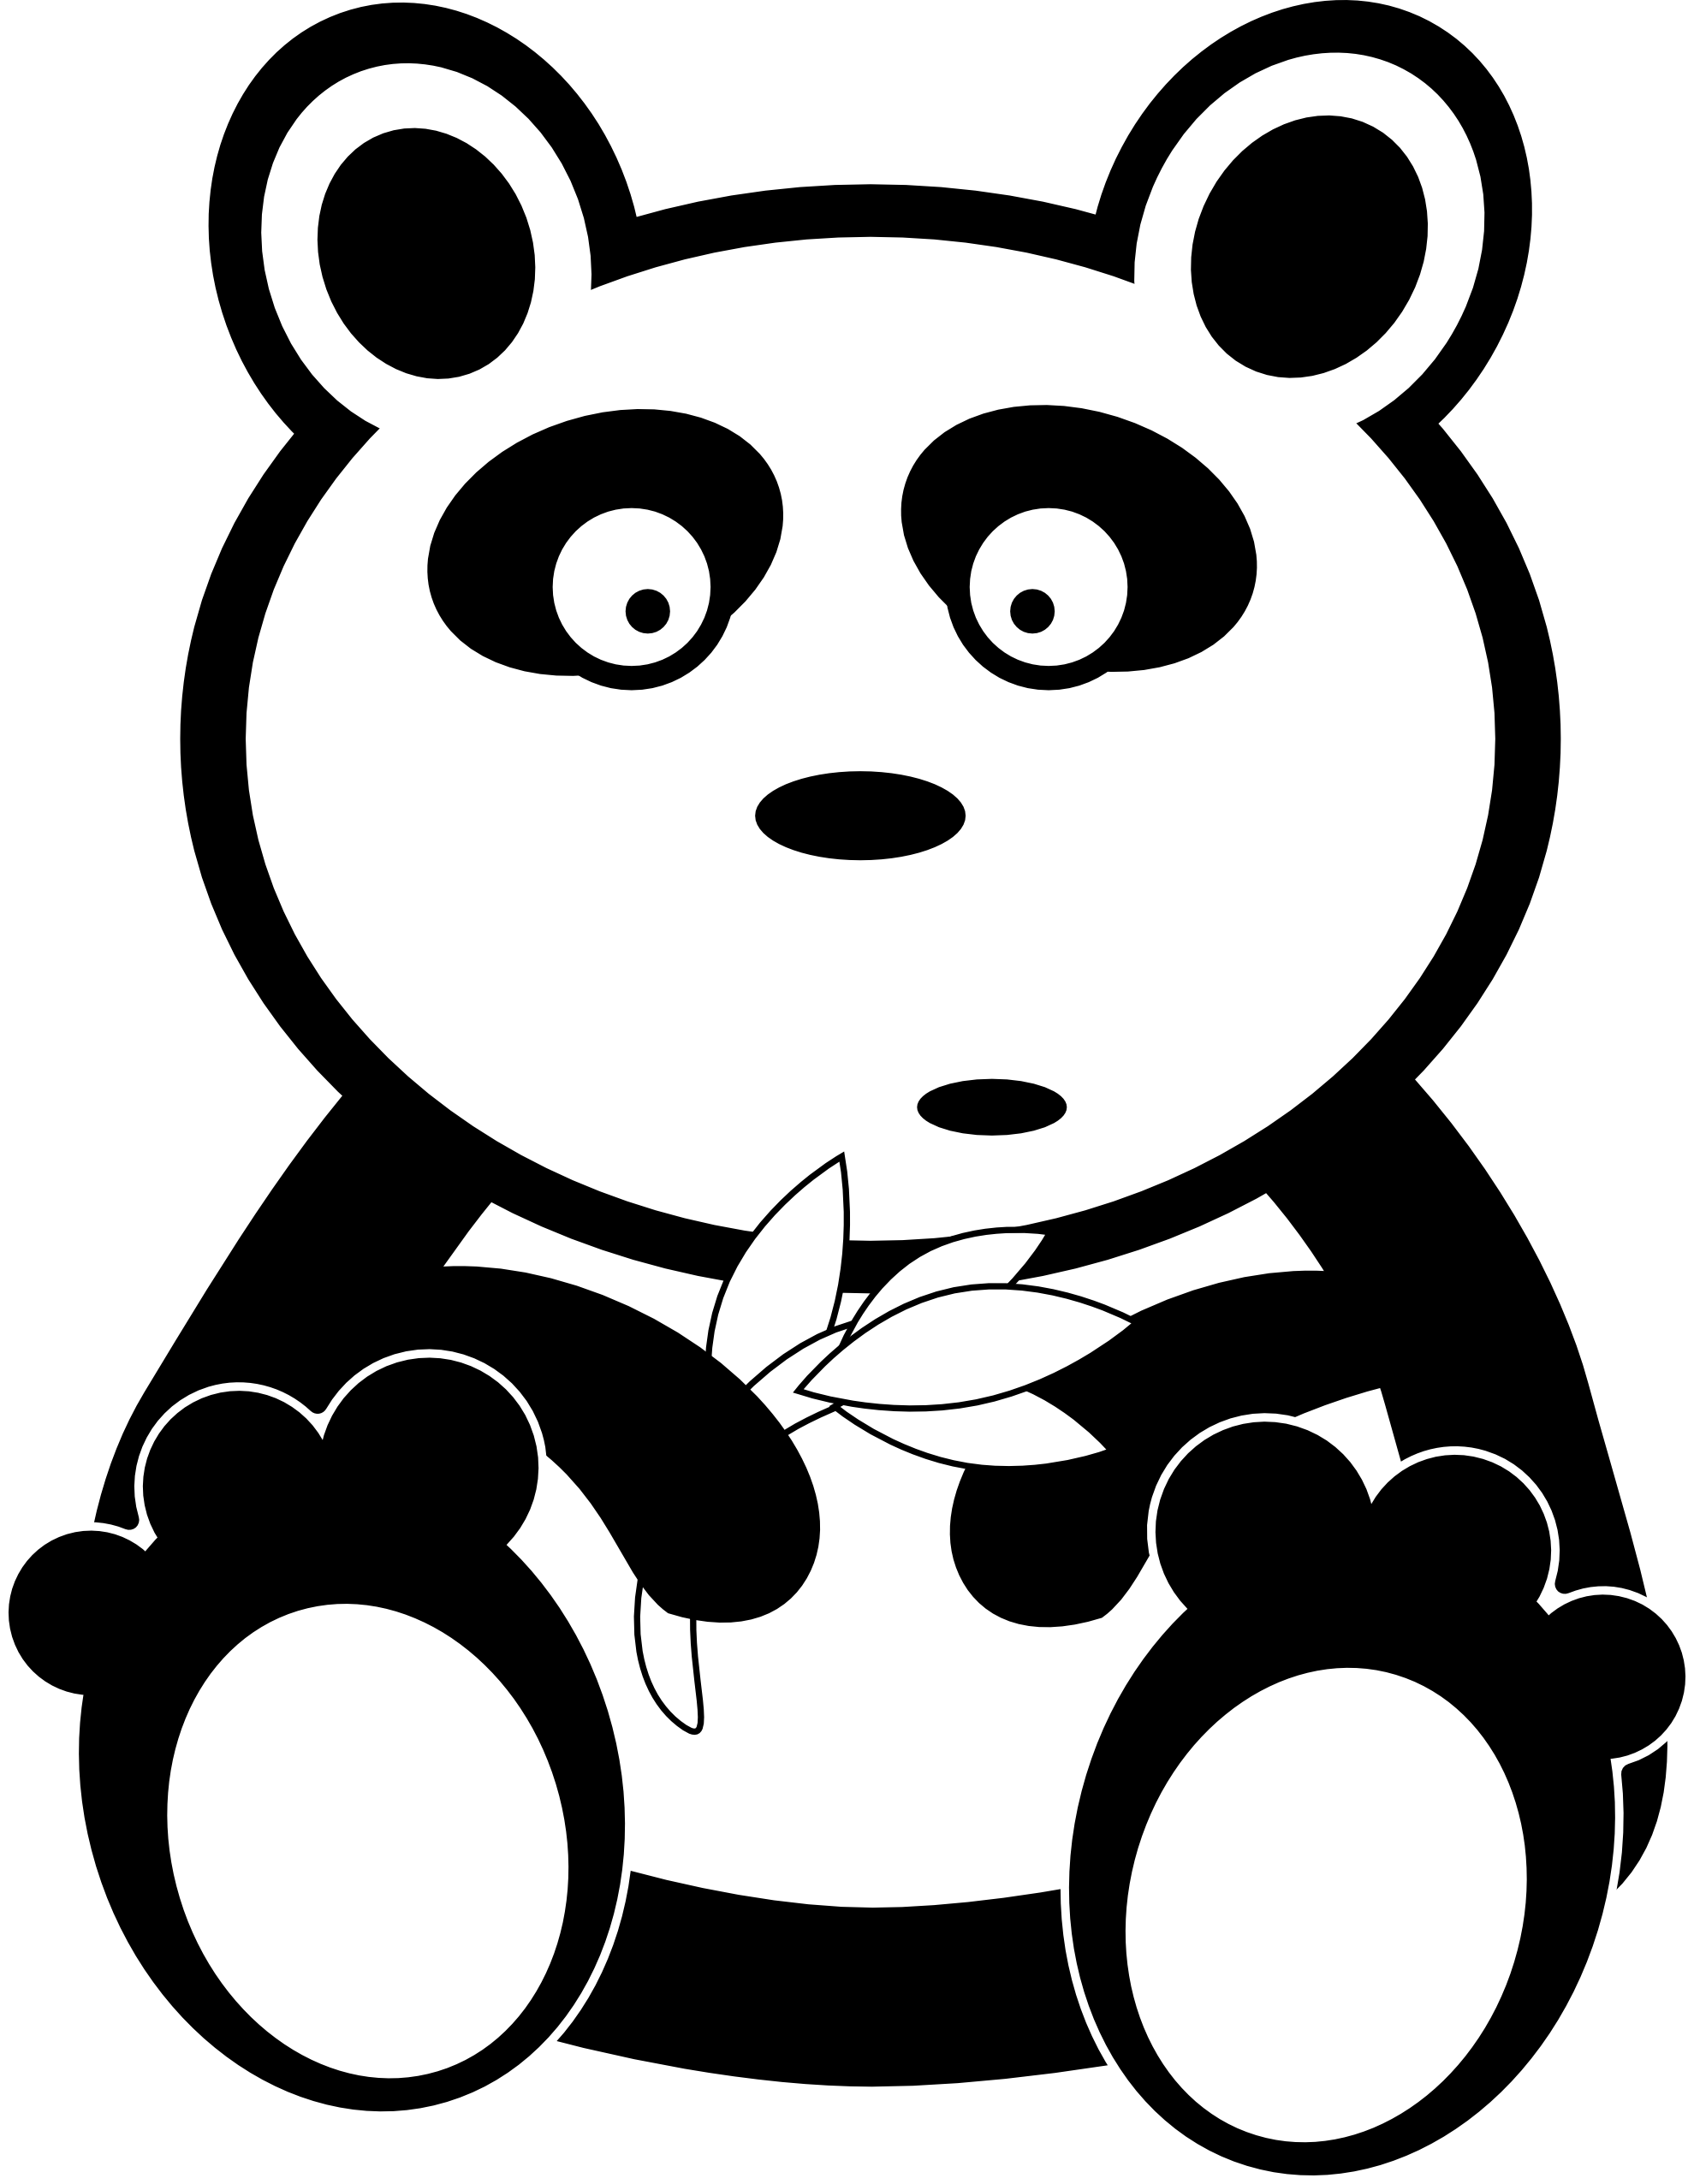 Panda black and white. Hippie clipart coloring sheet